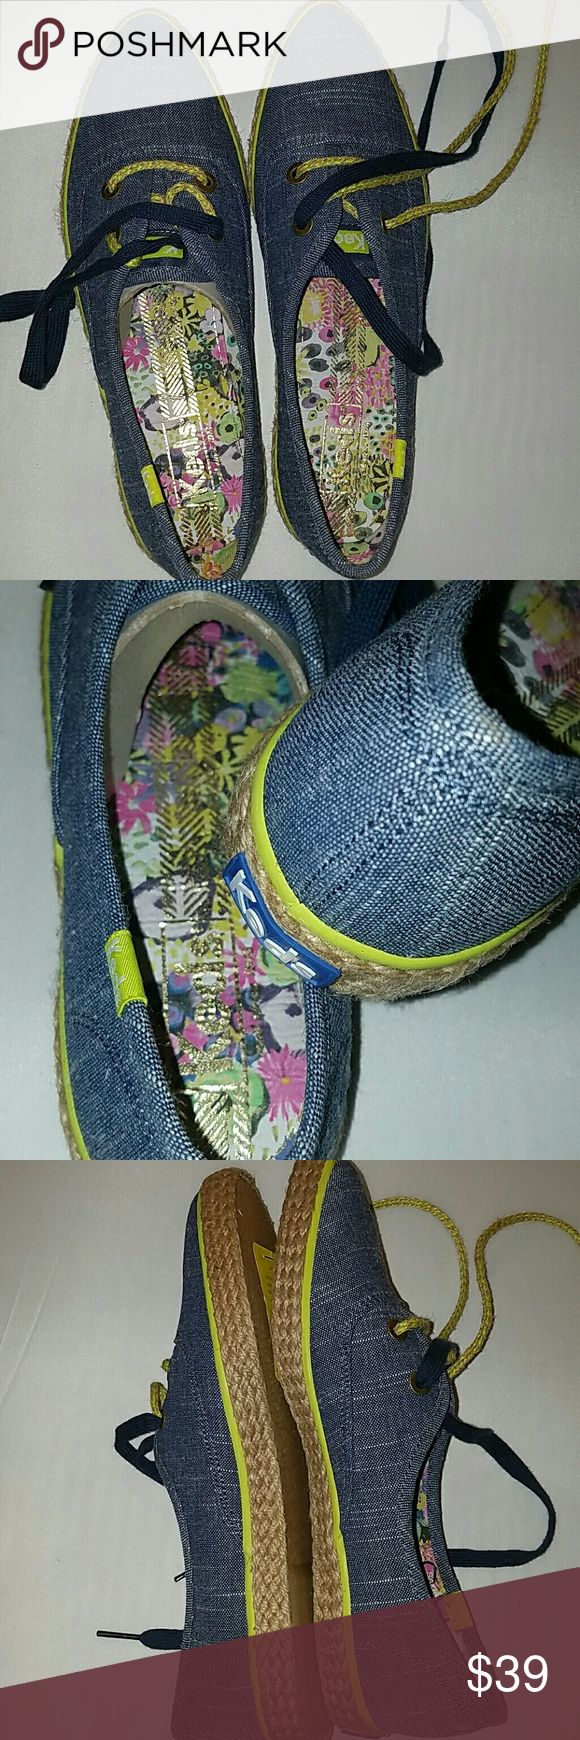 "☃️💲↘️👟👣NWT👣👟☃️💲↘️The Pointer by Keds SALE The Pointer by Keds in ""black"" (they are blue denim but the color is called black). Bright green trim, burlap wrapped rubber heel, adorable floral inside. Two laces, navy and green/burlap.  NWT,  no box!!! Keds Shoes"